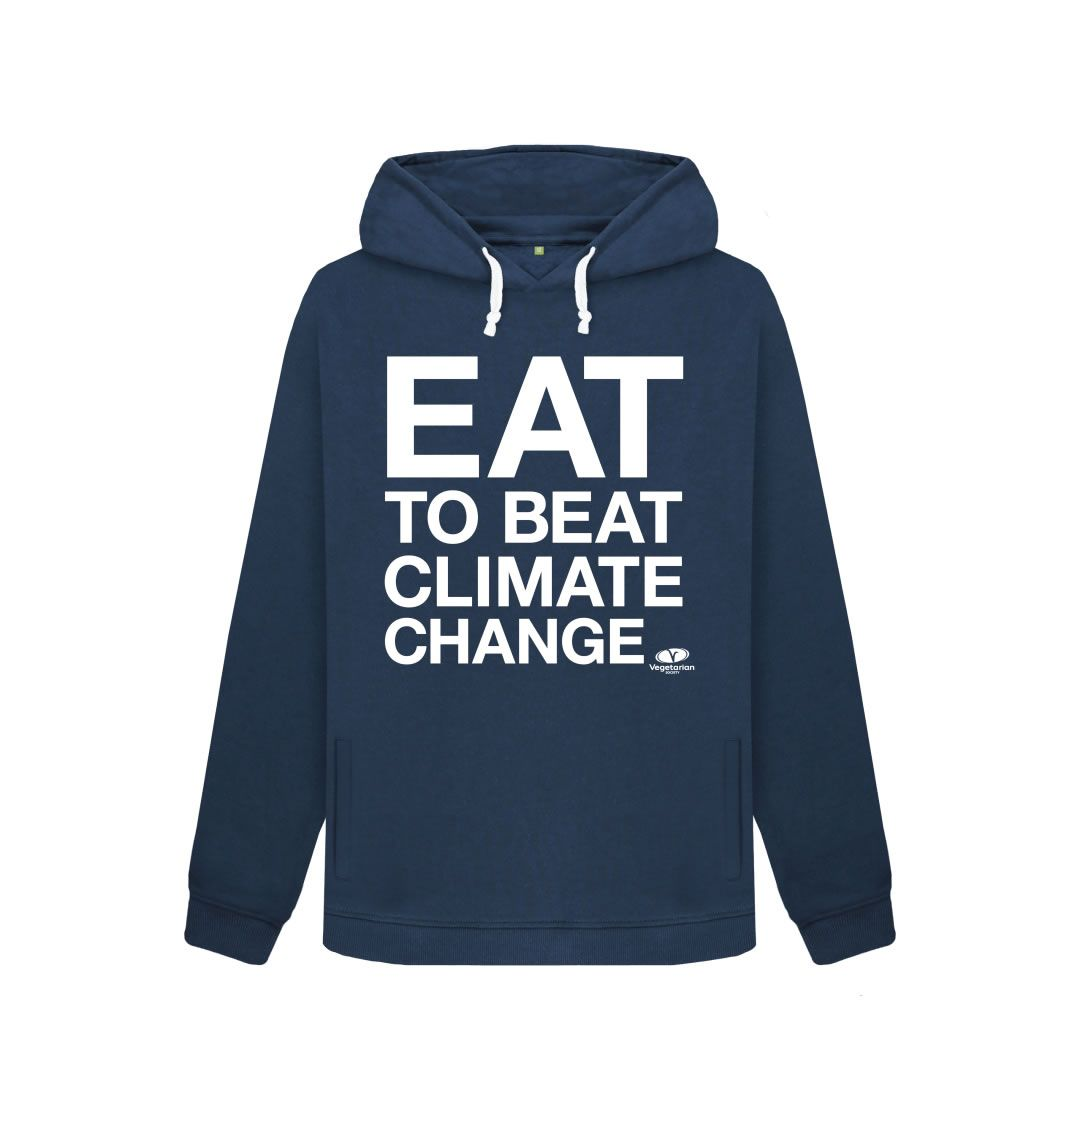 Make a statement by wearing an #EattoBeatClimateChange hoodie. You'll be sharing how eating veggie food is one of the best things we can all do for the planet. Printed on certified organic cotton in a renewable energy powered factory.